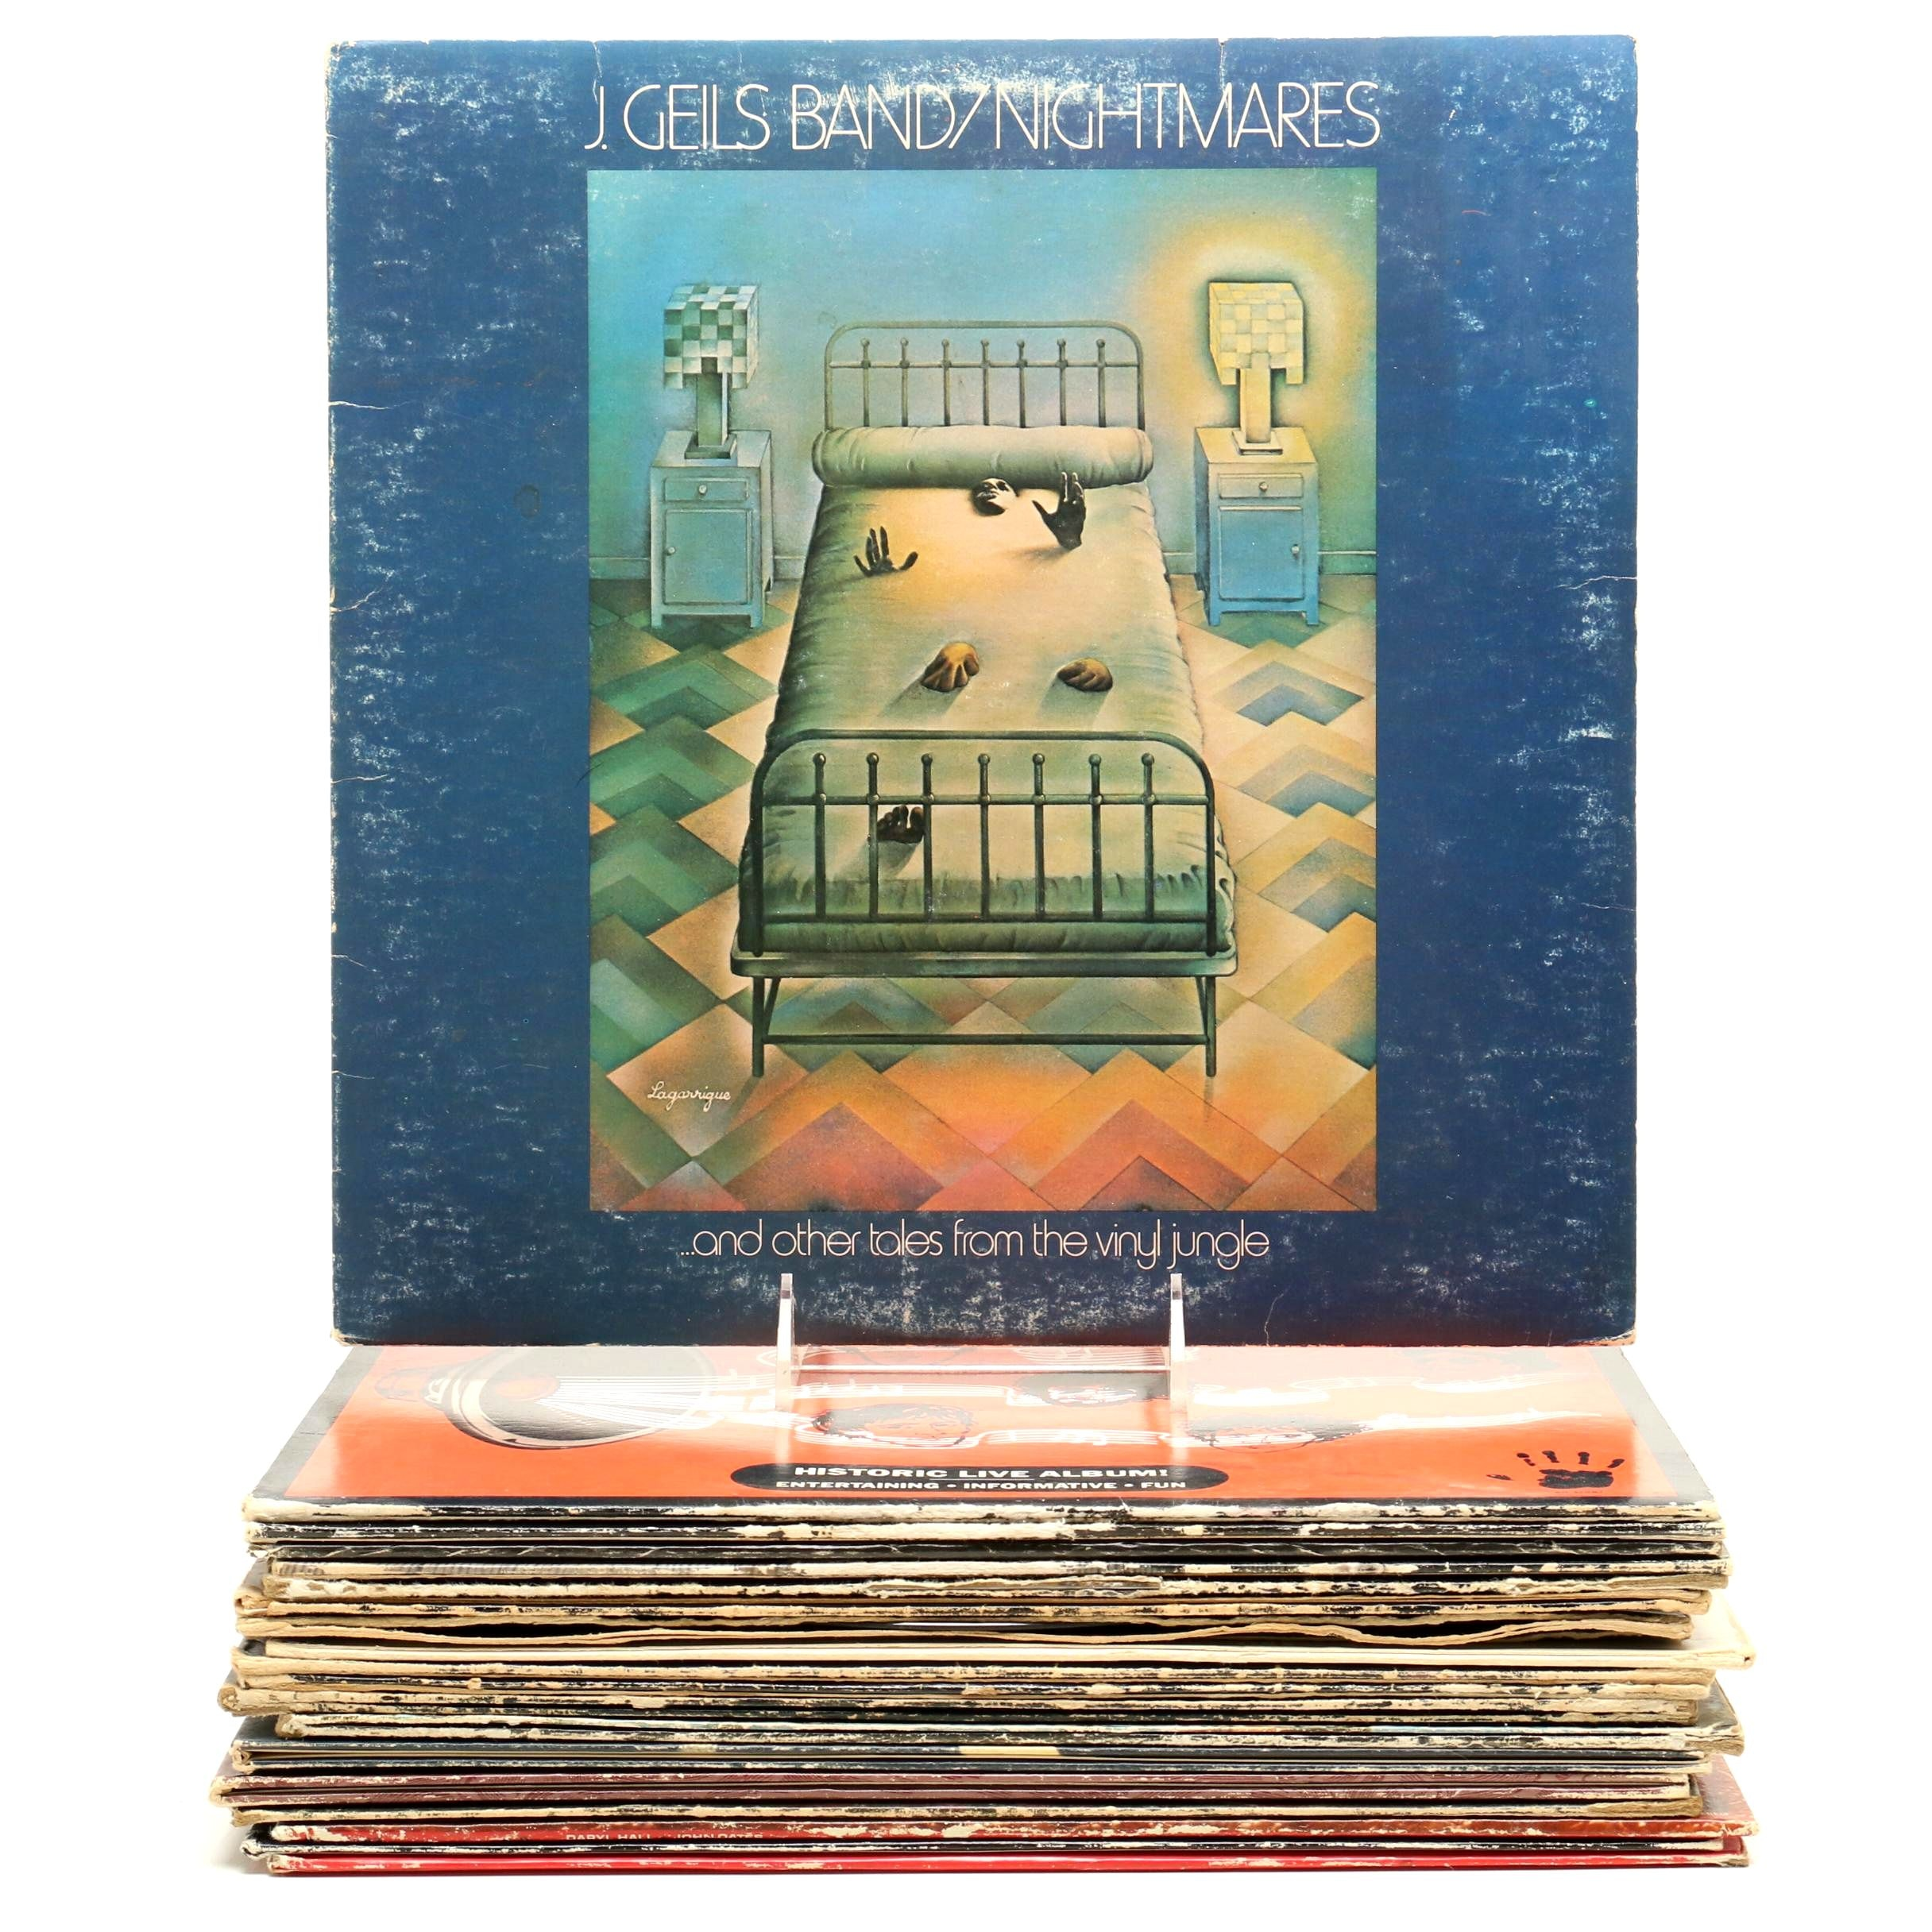 Classic Rock LP Records Including Jefferson Starship and Jim Croce